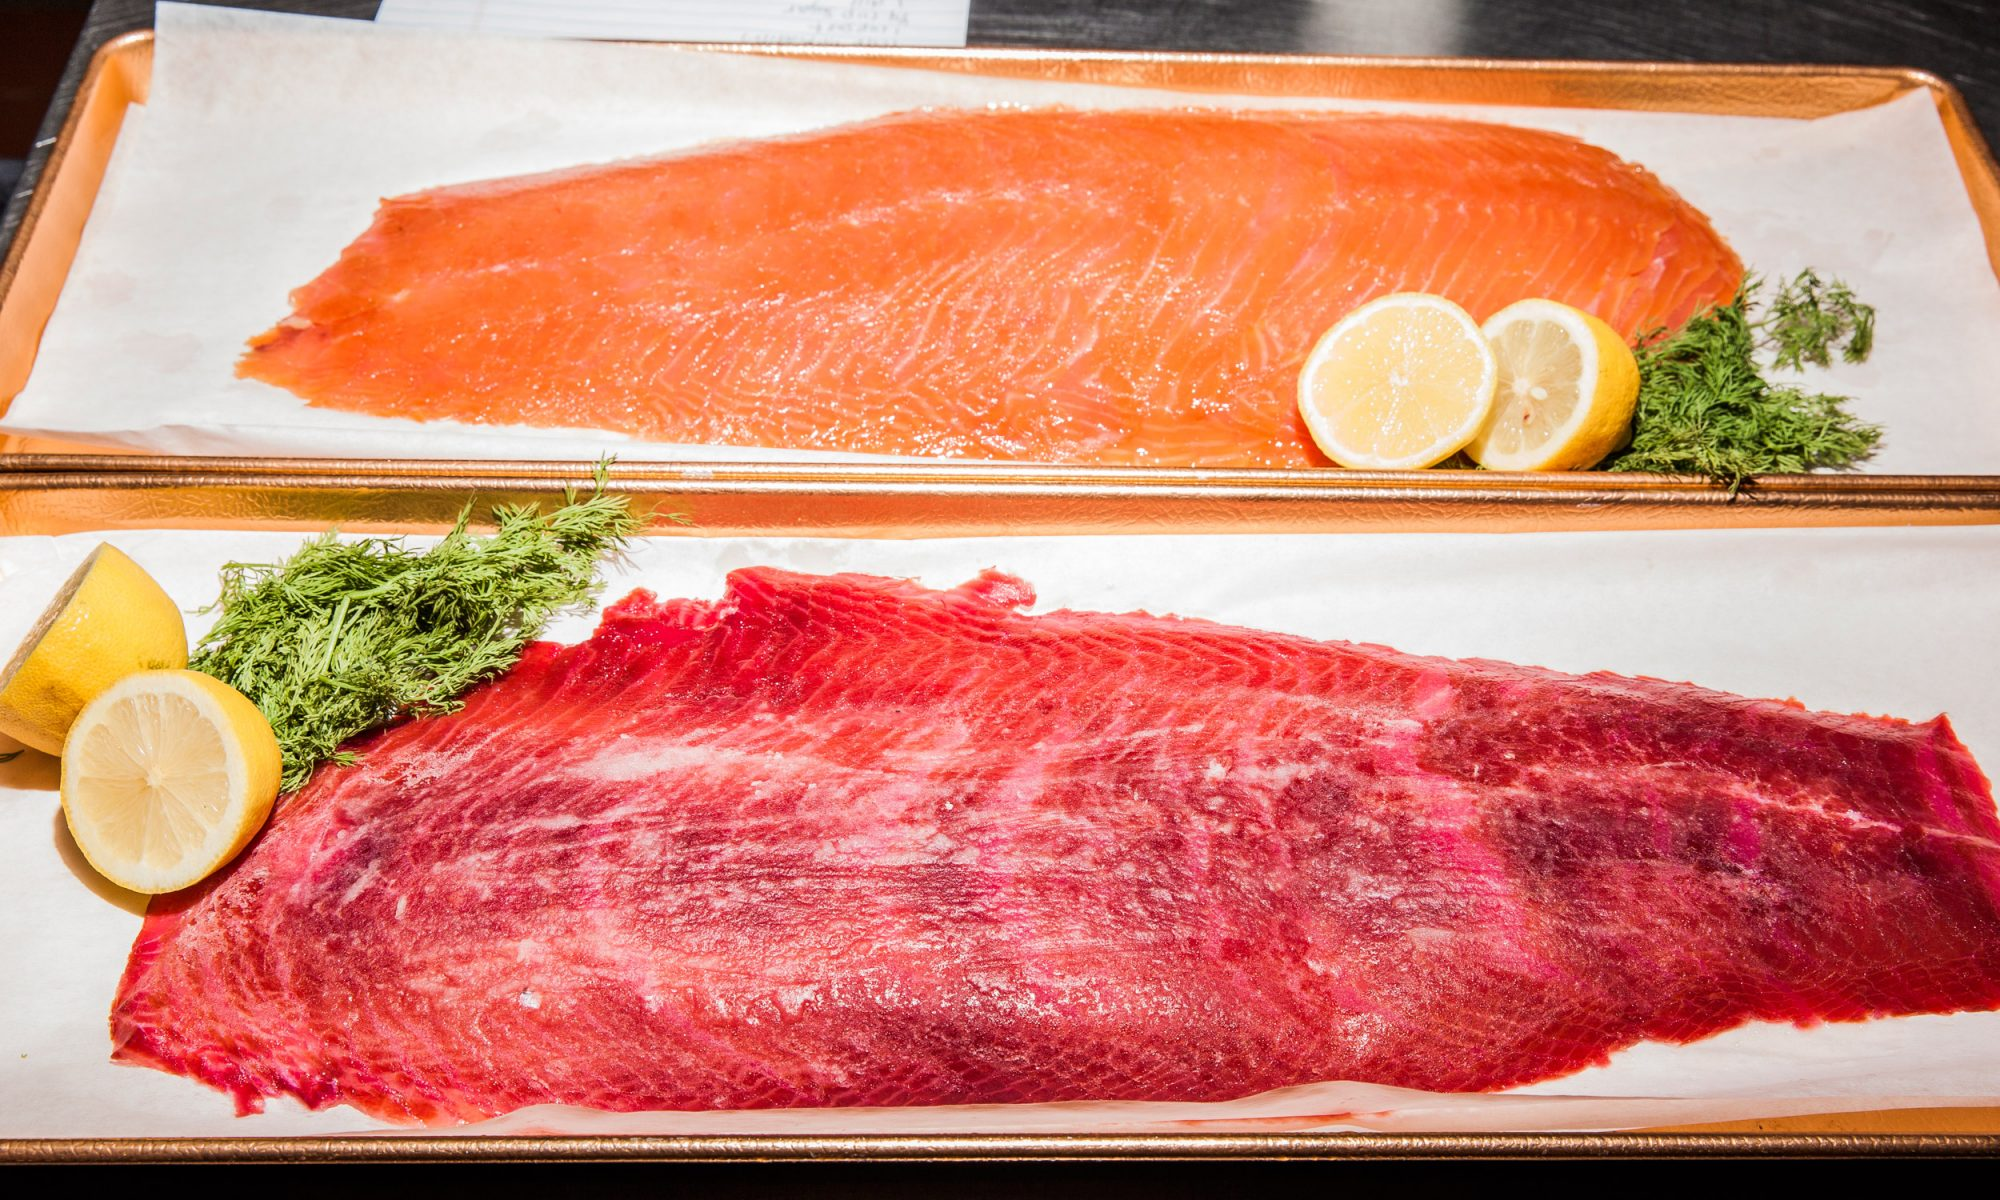 Yes, You Can Make Beet-Cured Lox at Home